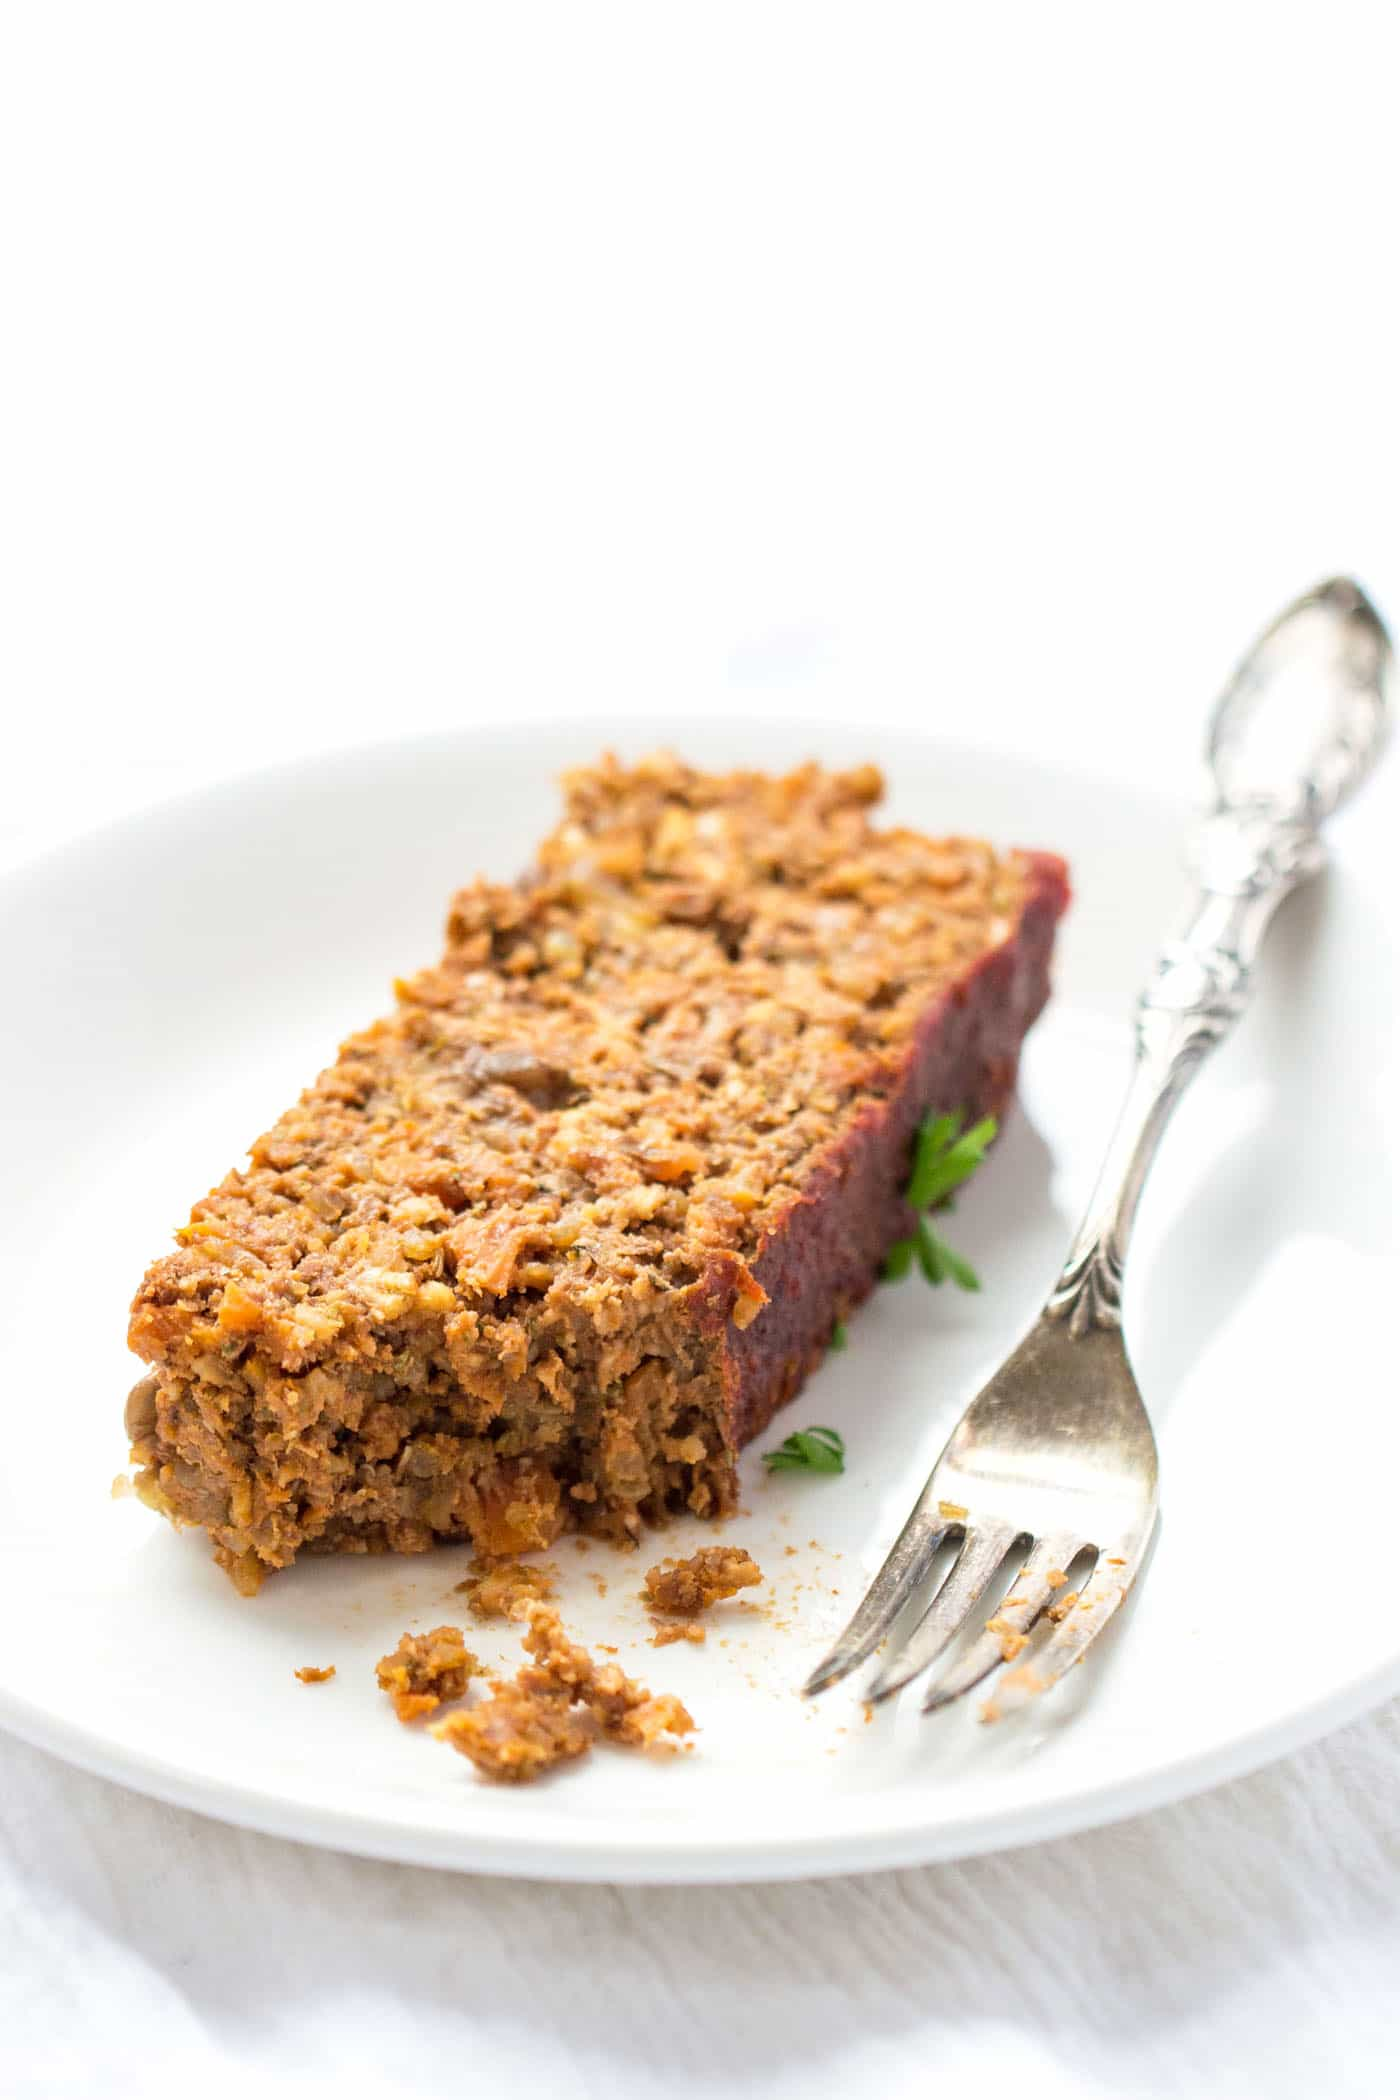 LENTIL + QUINOA MEATLOAF -- made with a blend of mushrooms, walnuts, lentils and quinoa, and then smothered in a tomato-maple glaze!